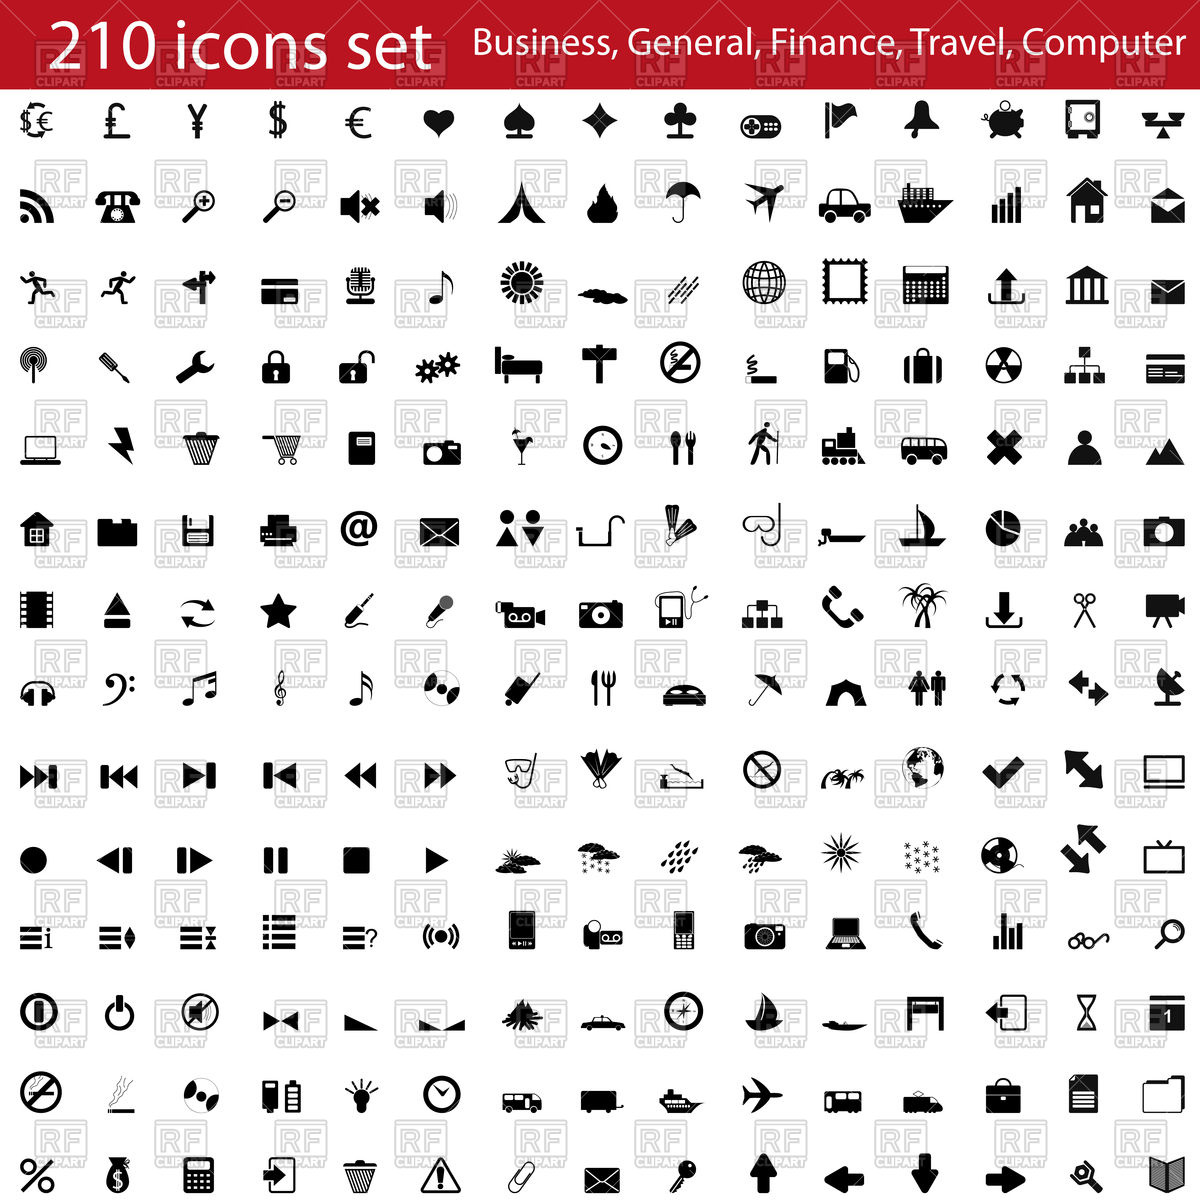 1200x1200 Set Of Colorful Business And Social Media Icons Vector Image